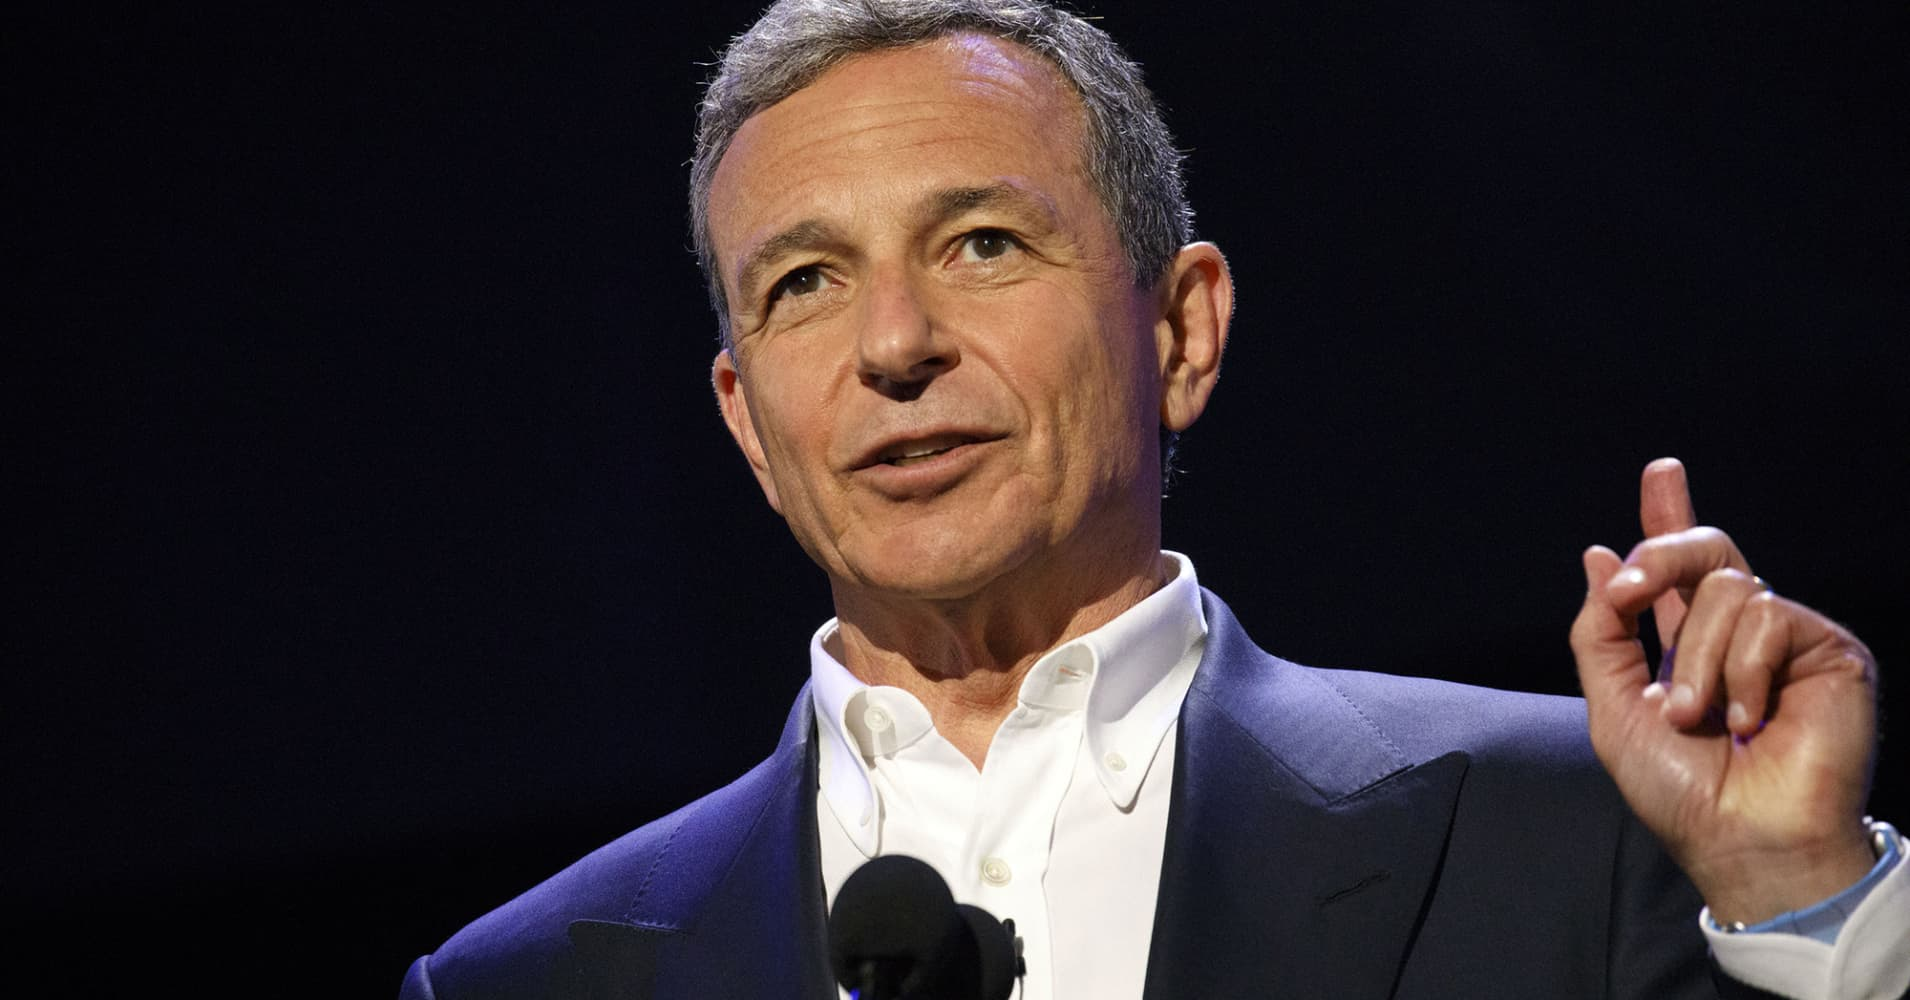 Disney shareholders vote against CEO Iger's pay package